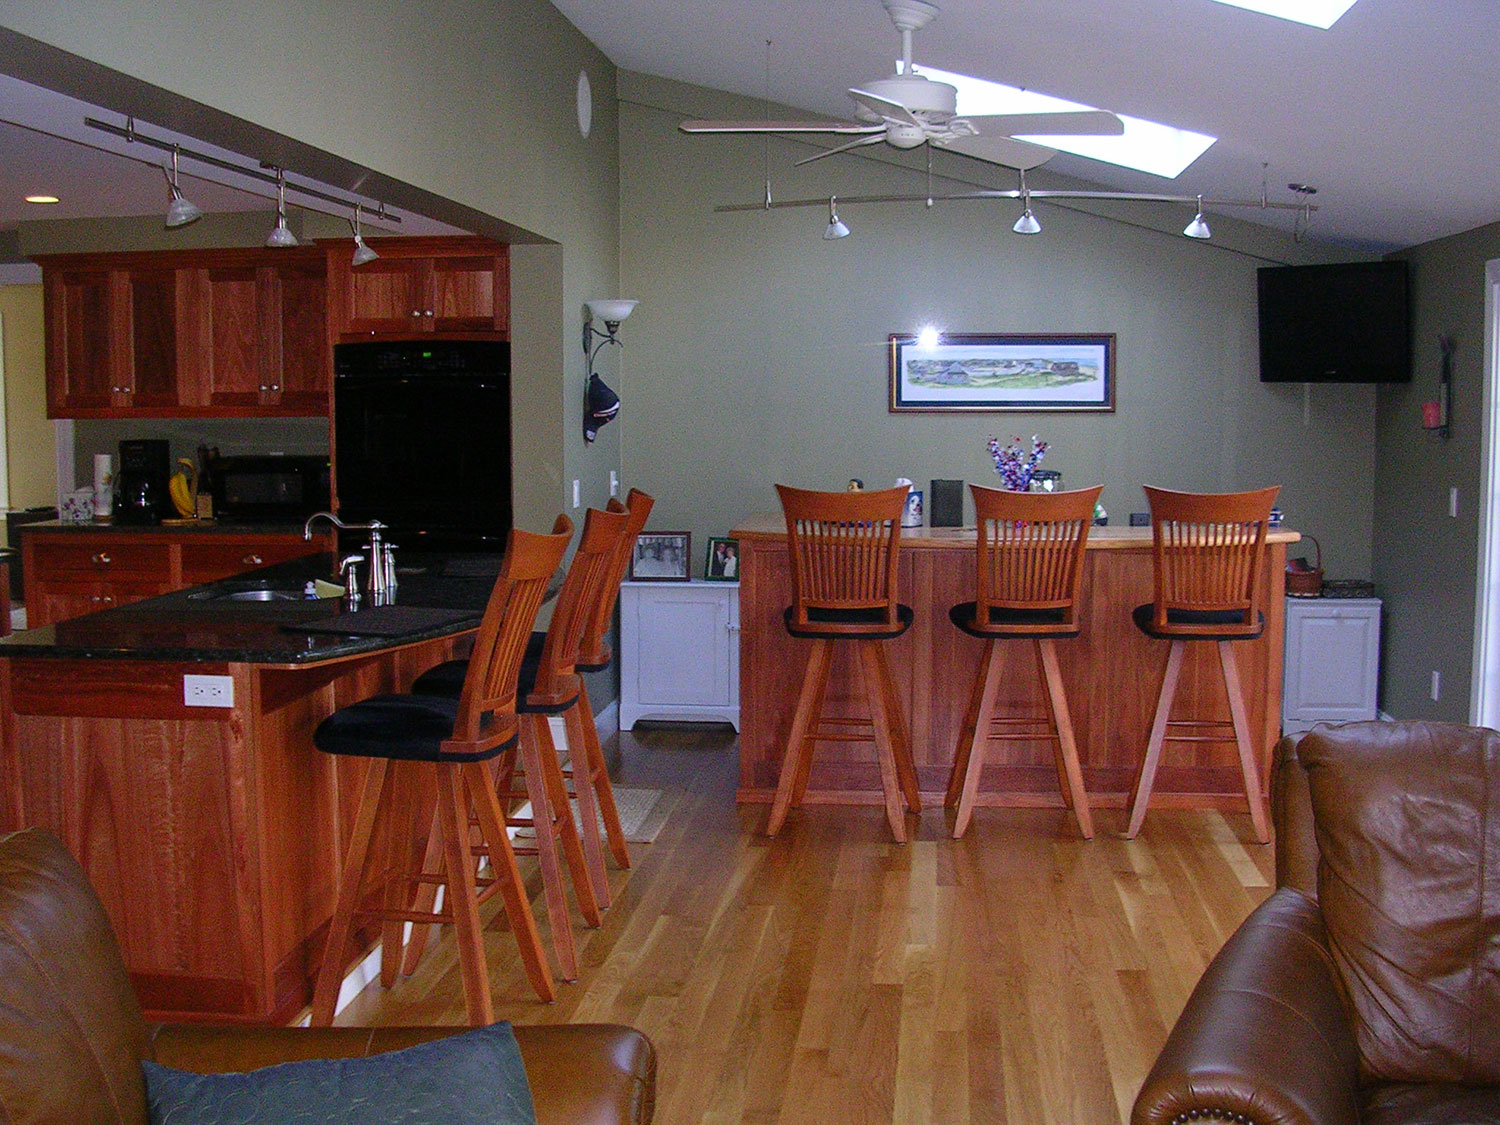 53_View-of-bar-area